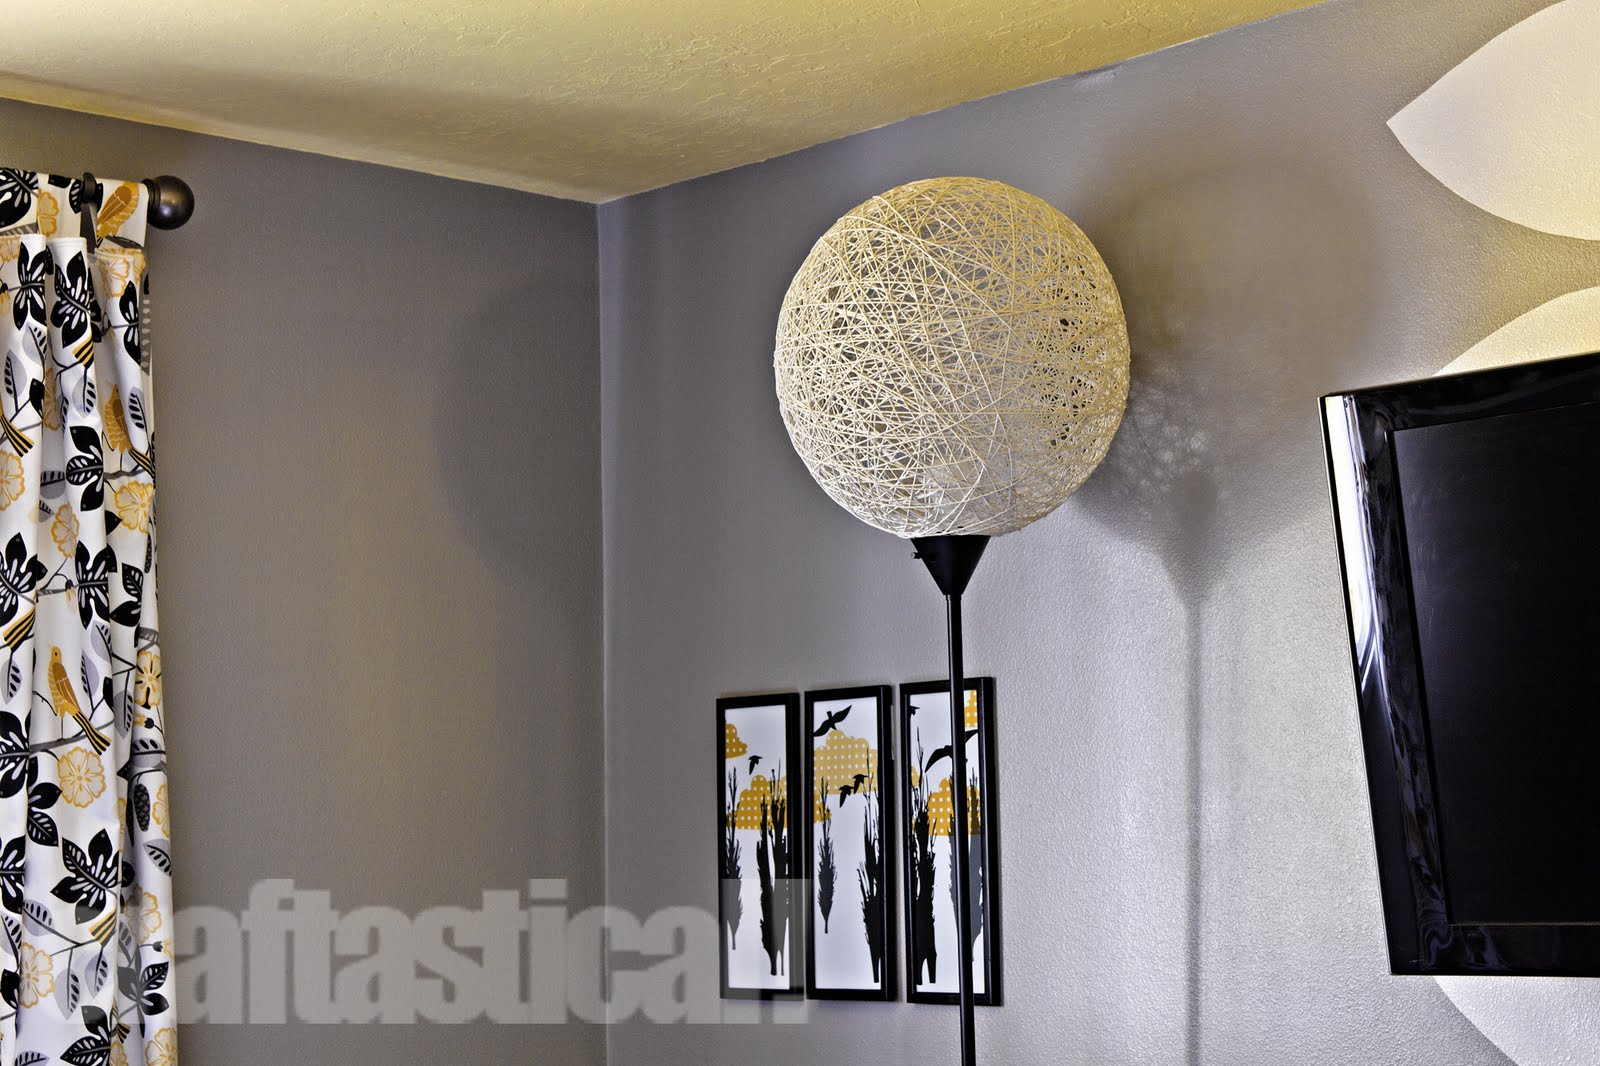 Craftastical!: The Pinterest Challenge--A Floor Lamp Make-Over for String Floor Lamp  155sfw